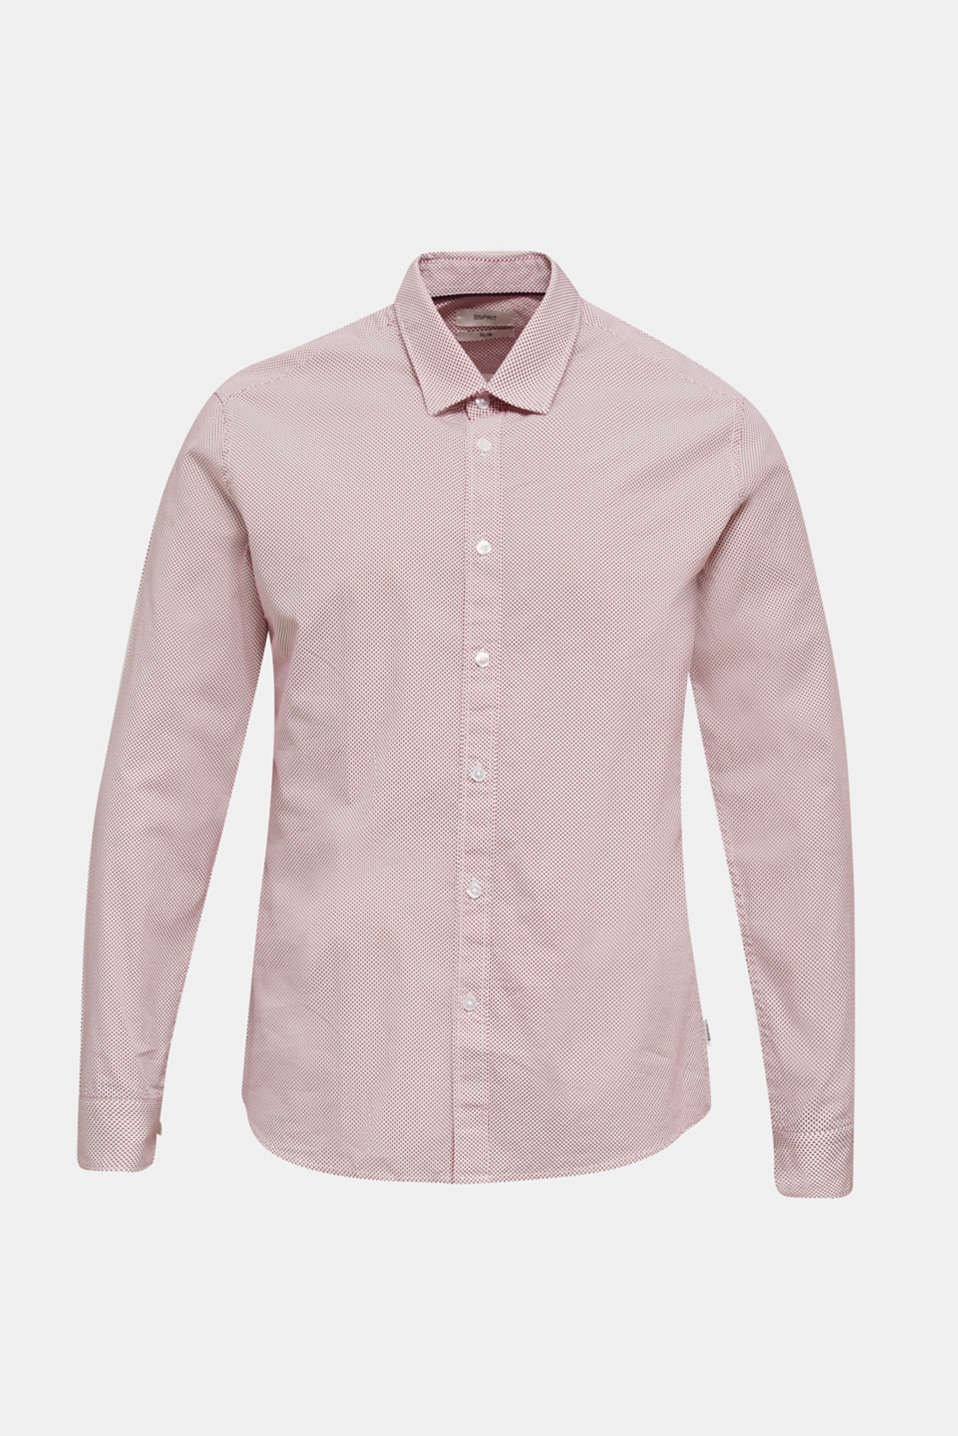 Textured shirt made of 100% cotton, RED 4, detail image number 4